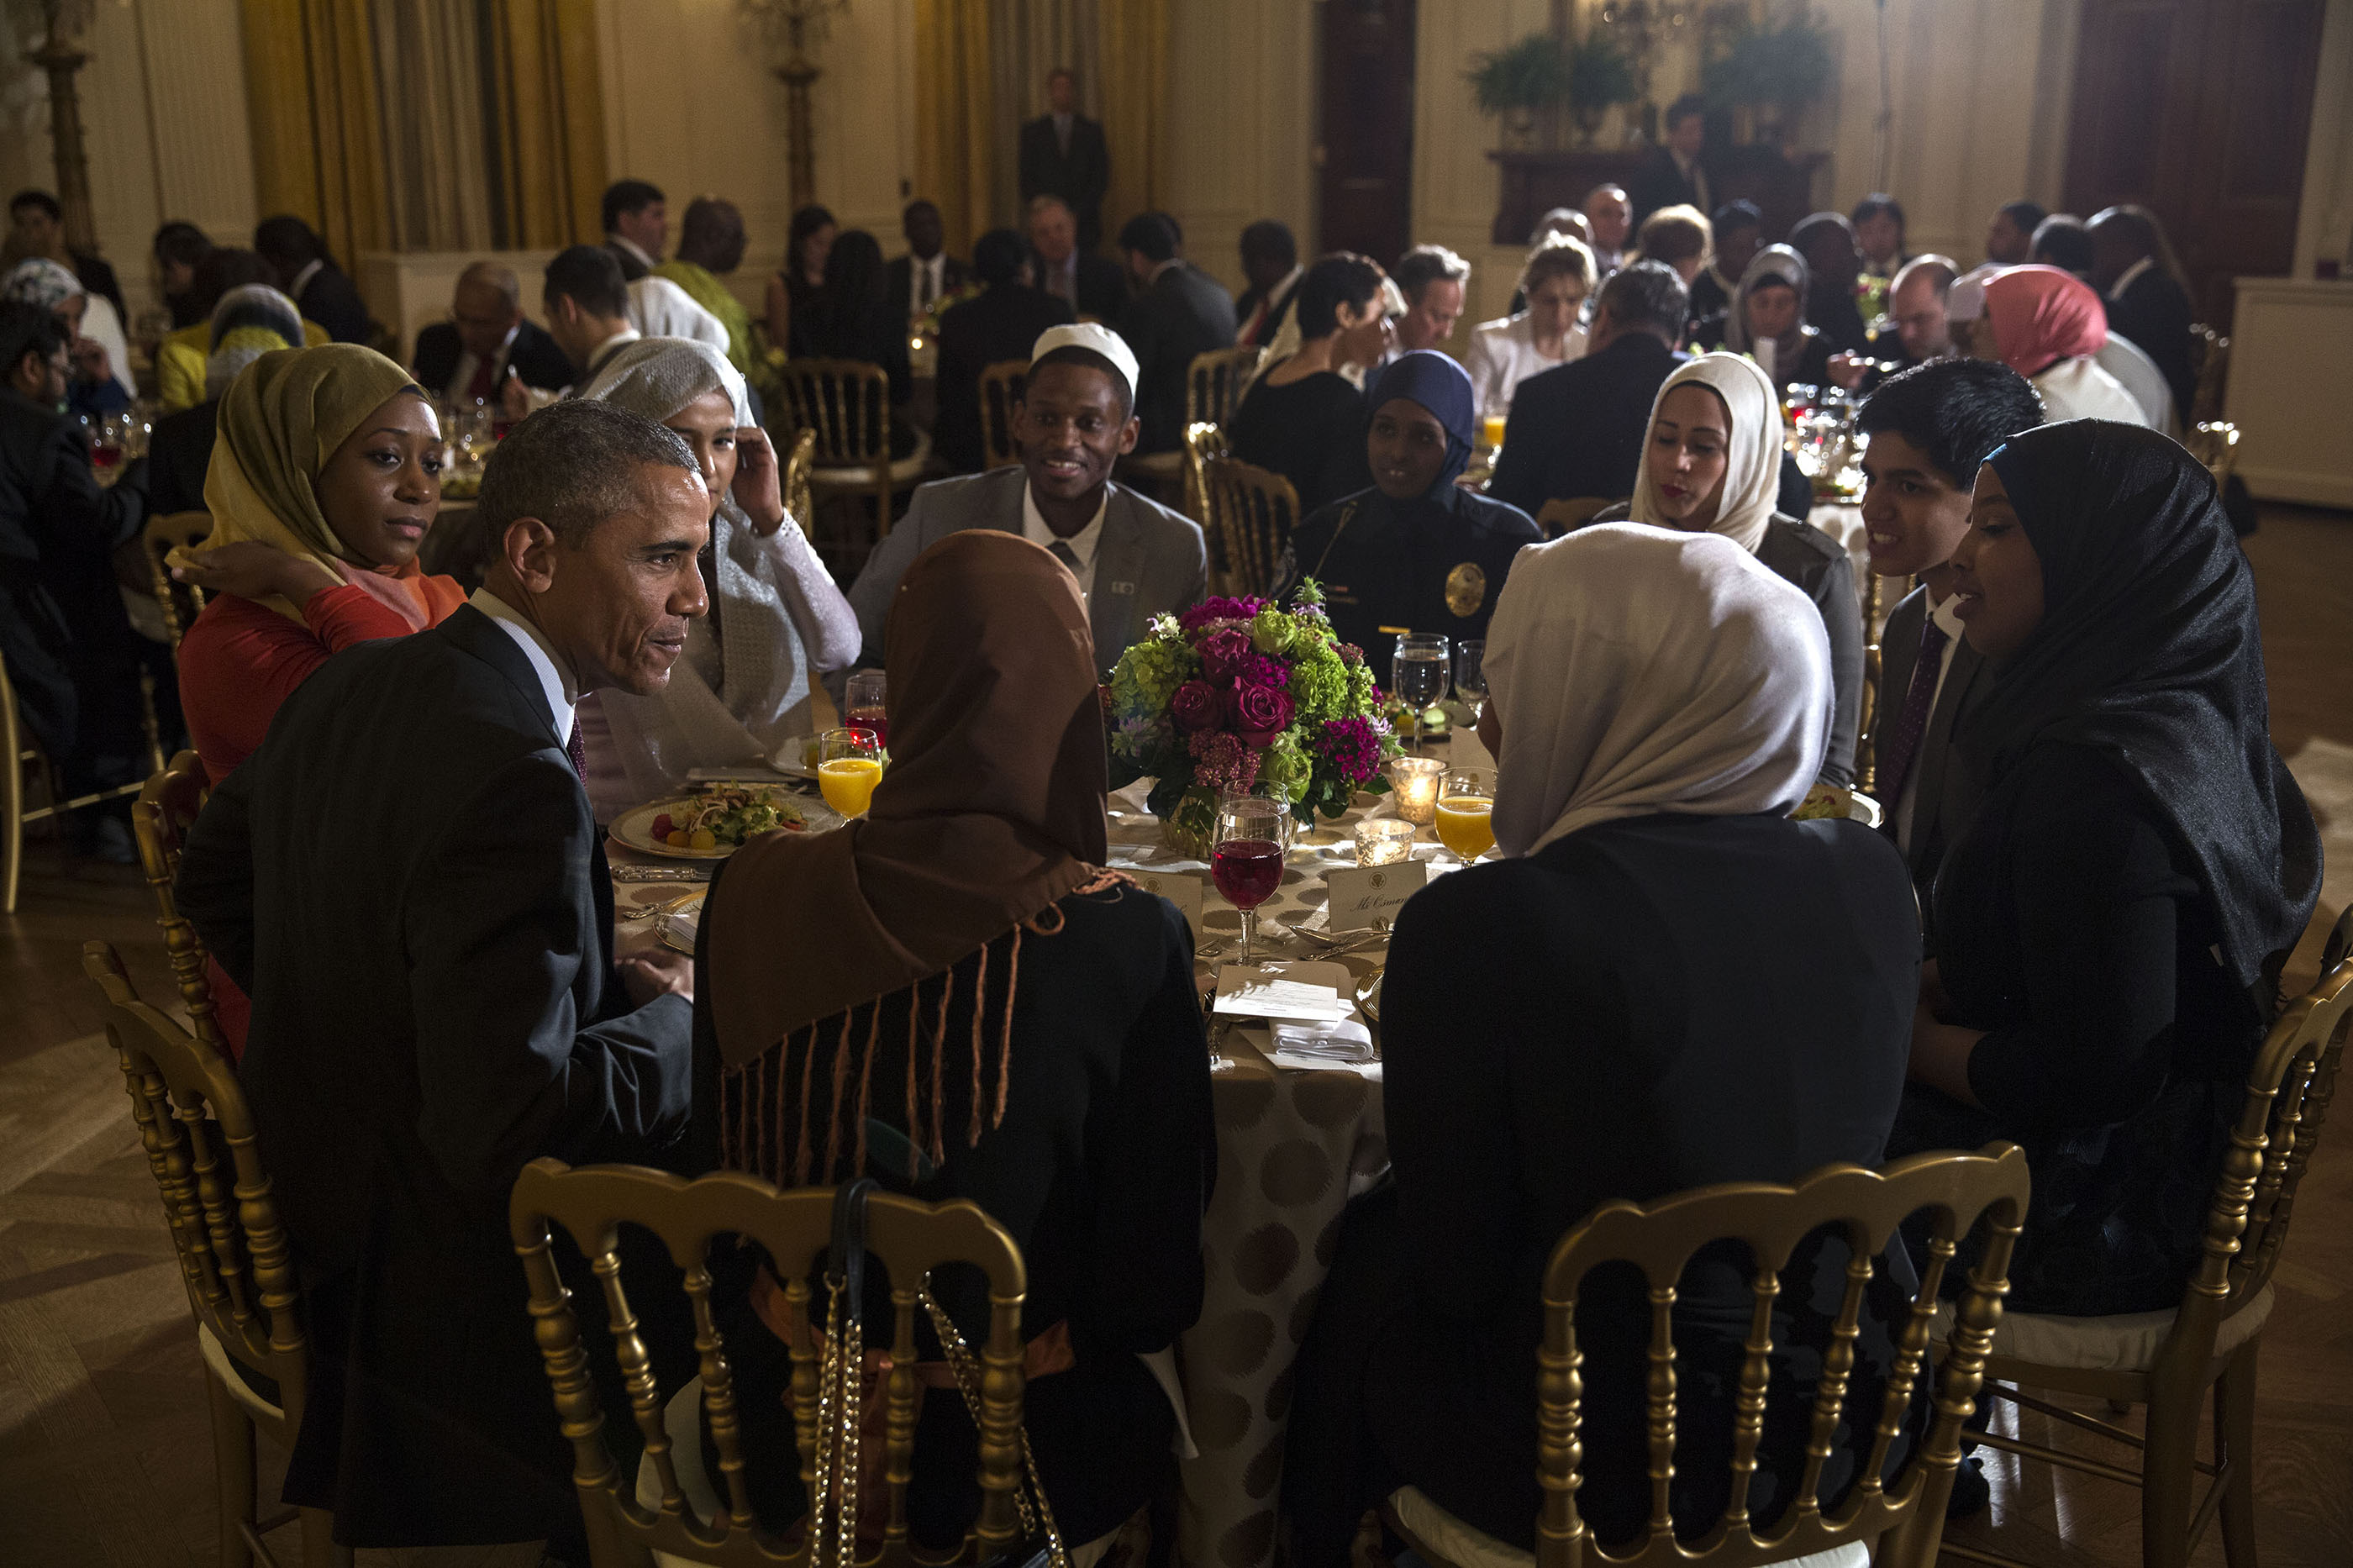 President Obama Hosts a Ramadan Iftar Dinner at the White House ...